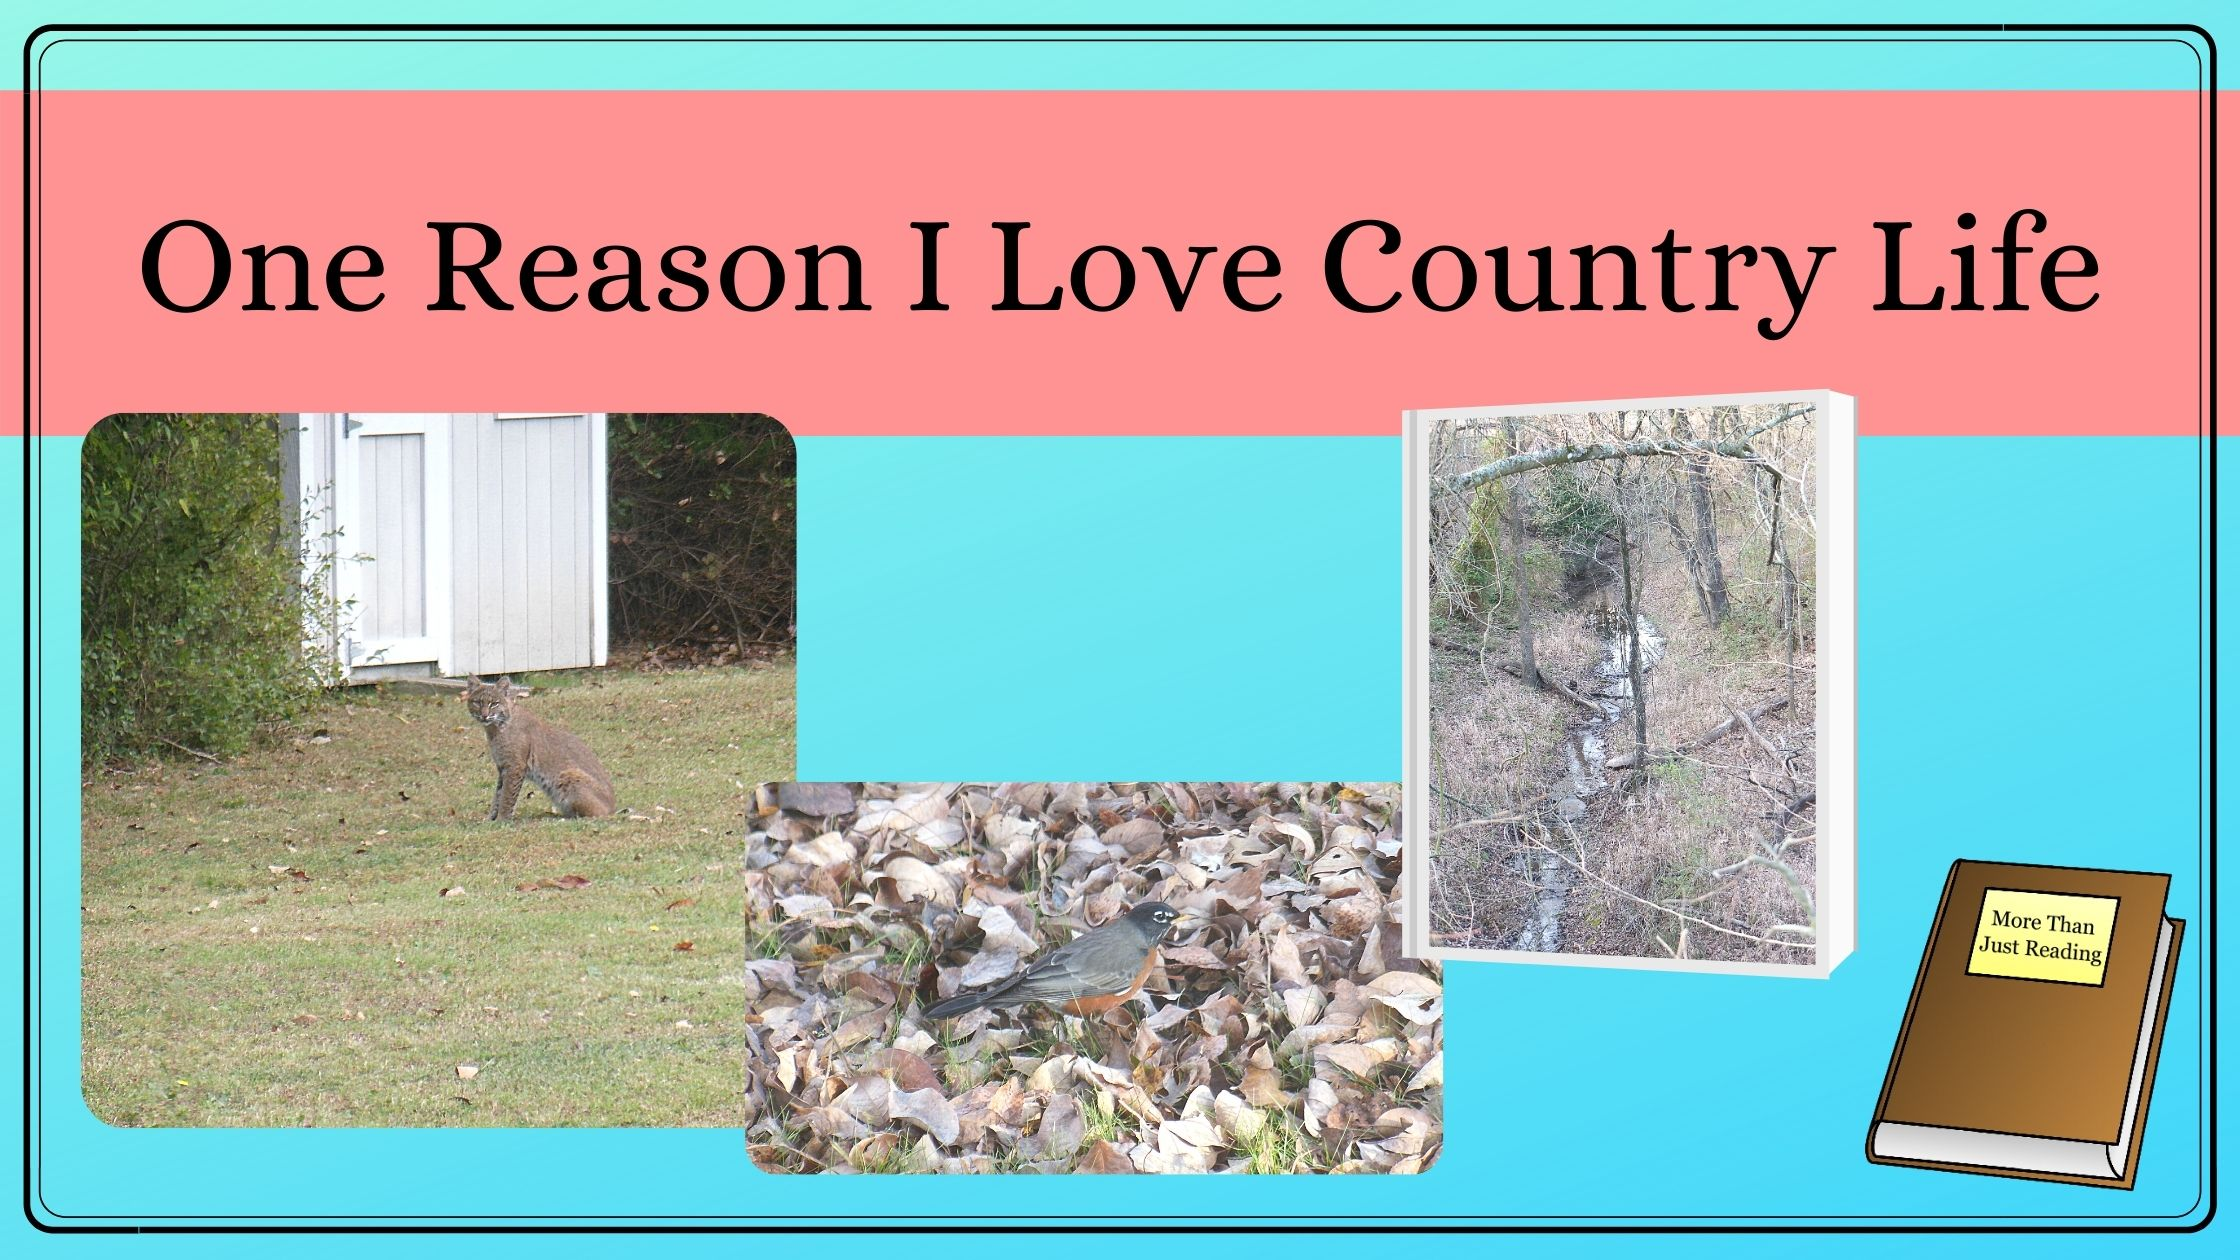 One reason I love country life